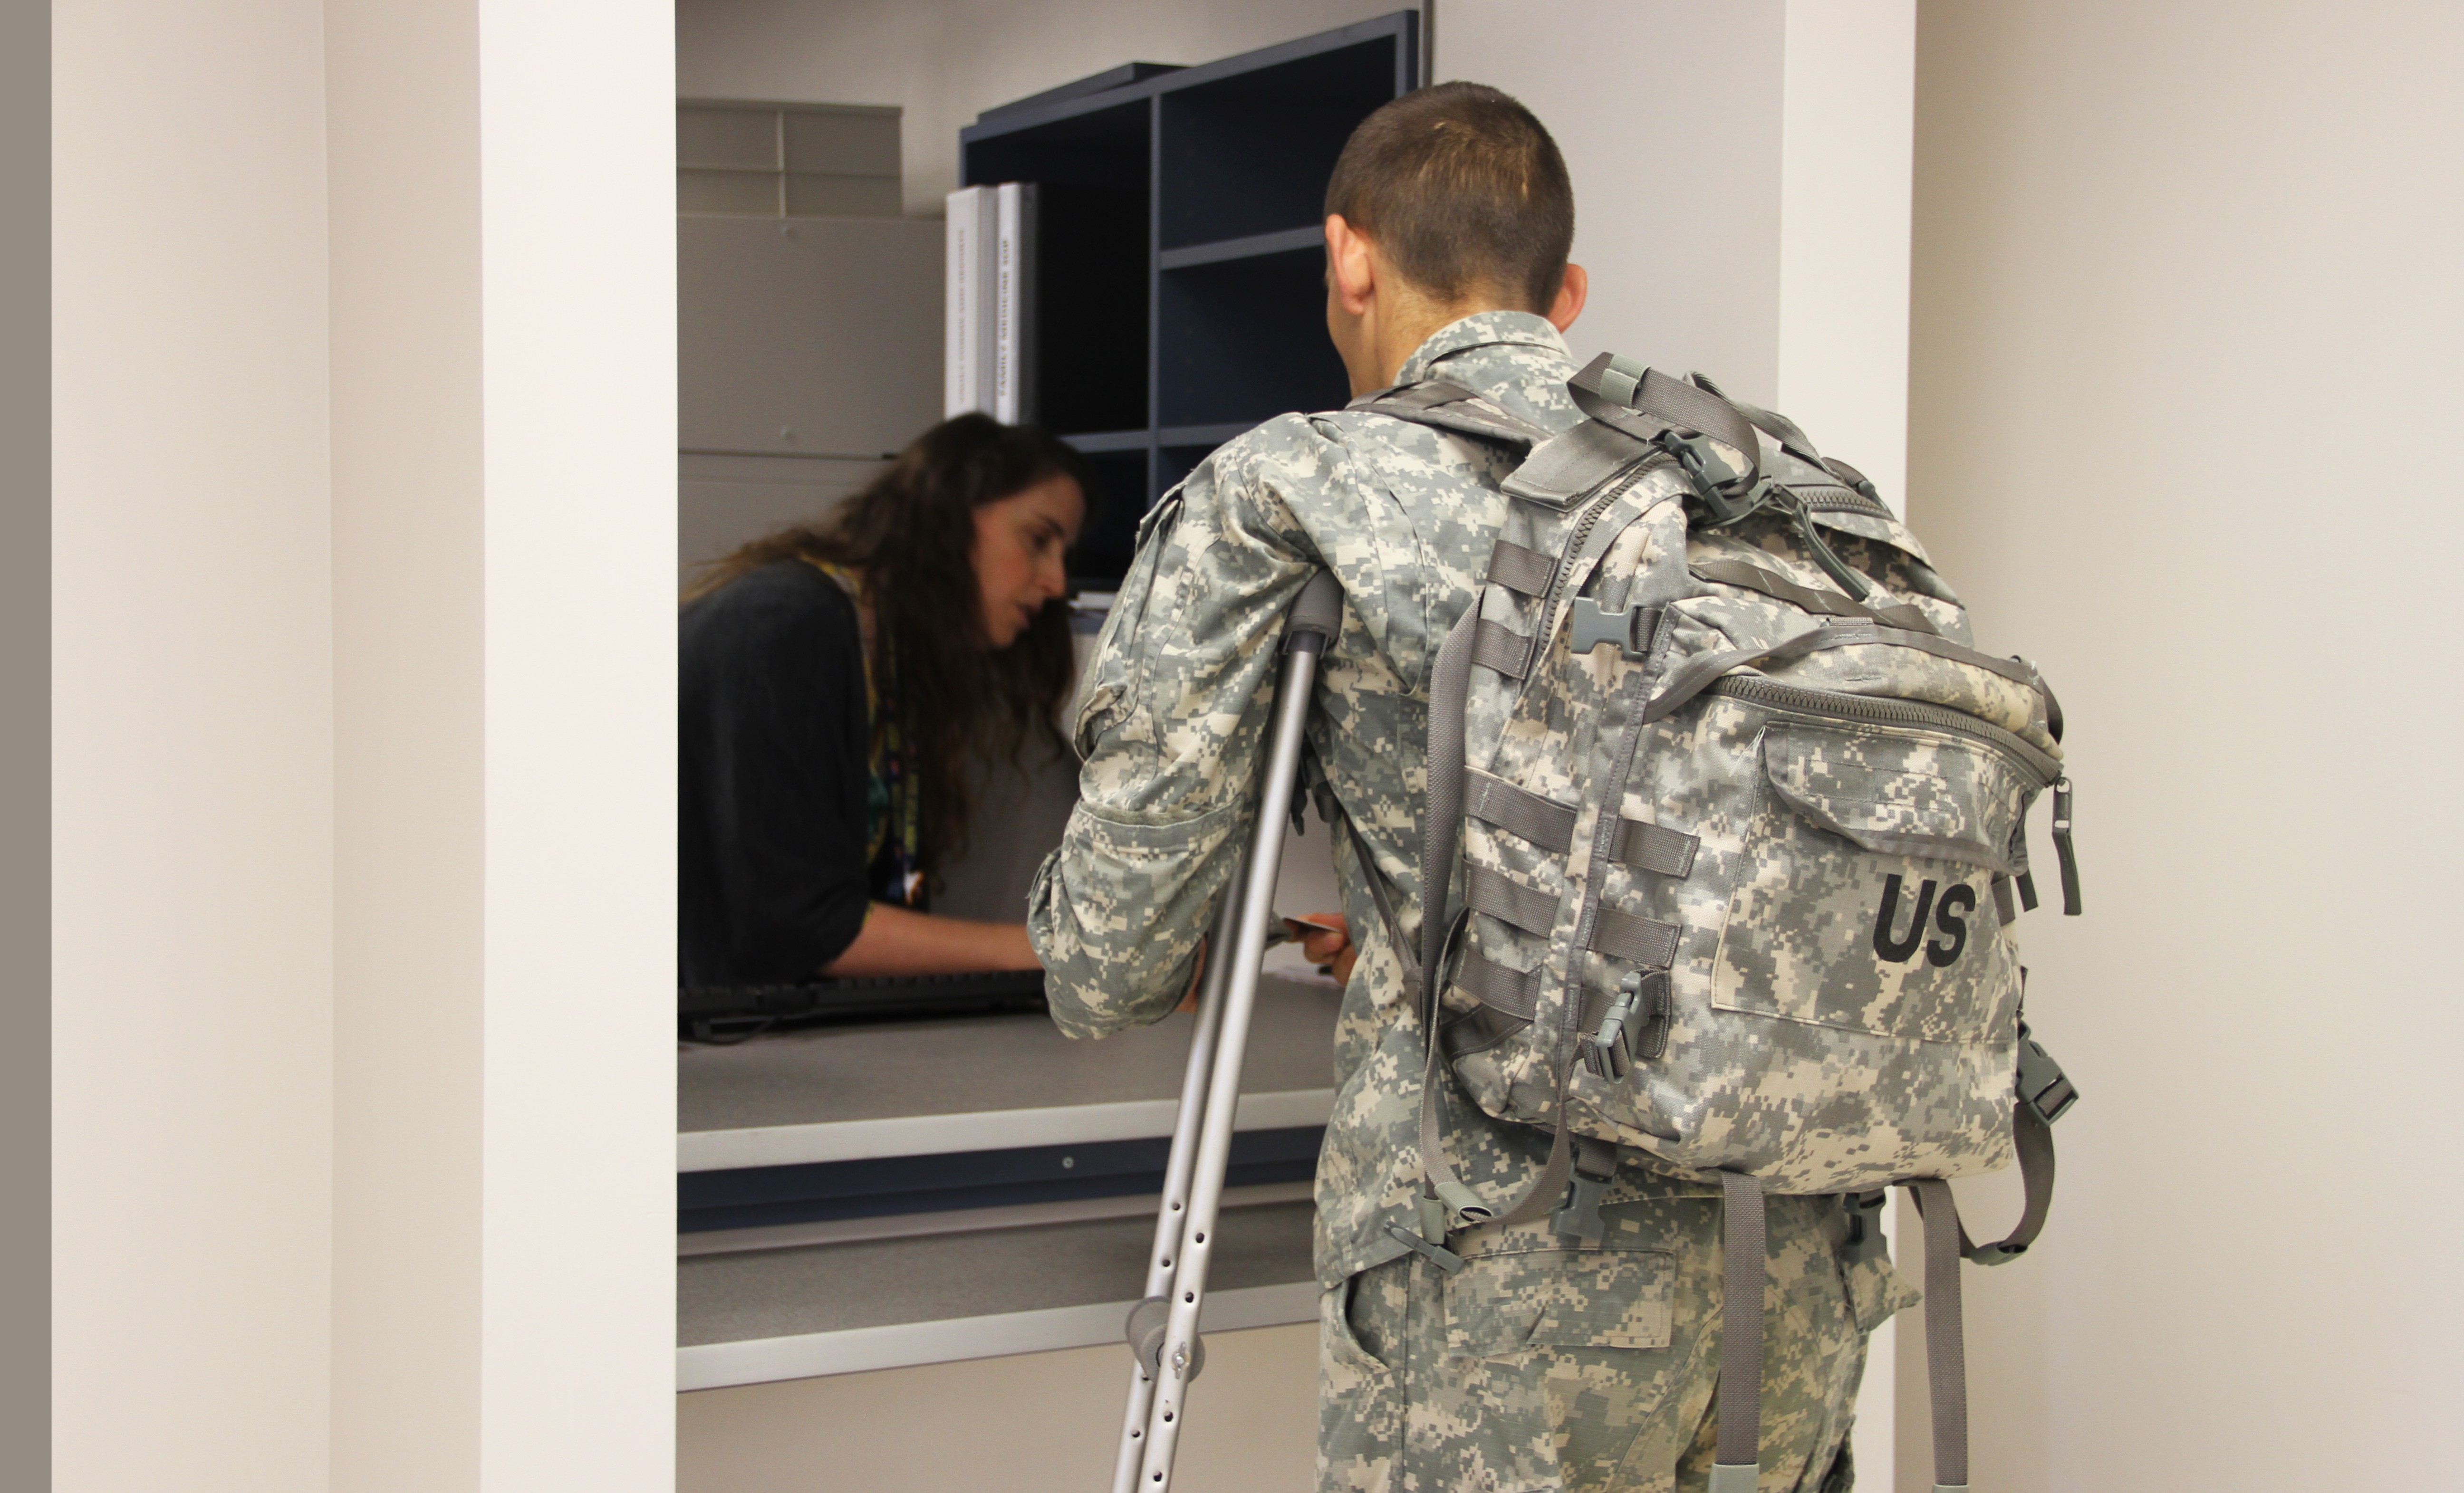 missing medical appointments in the army Disqualifying medical conditions for military service specifically the upper body extremities military medical standards for enlistment and appointment hyper-flexible joints, frozen joints, missing fingers, limbs, any paralysis are some of the more common reasons candidates for the military get.